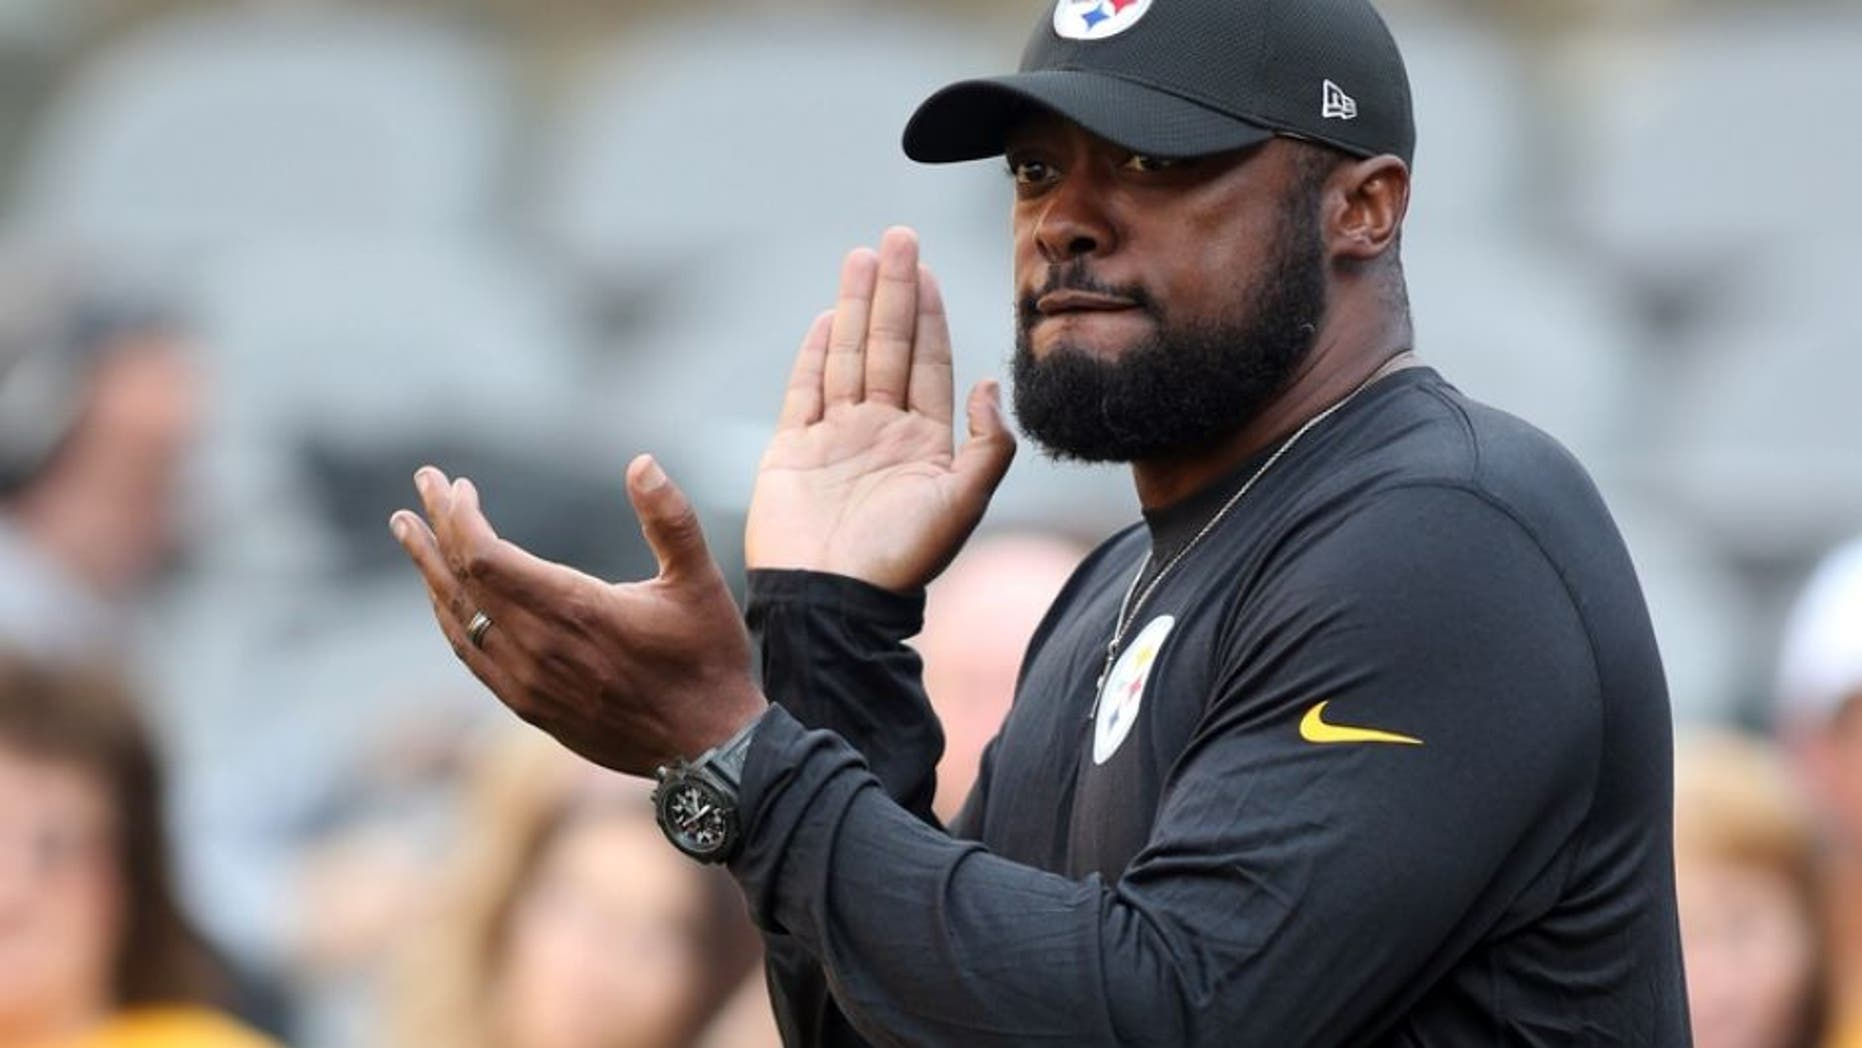 Aug 12, 2016; Pittsburgh, PA, USA; Pittsburgh Steelers head coach Mike Tomlin reacts on the field before playing the Detroit Lions at Heinz Field. Mandatory Credit: Charles LeClaire-USA TODAY Sports